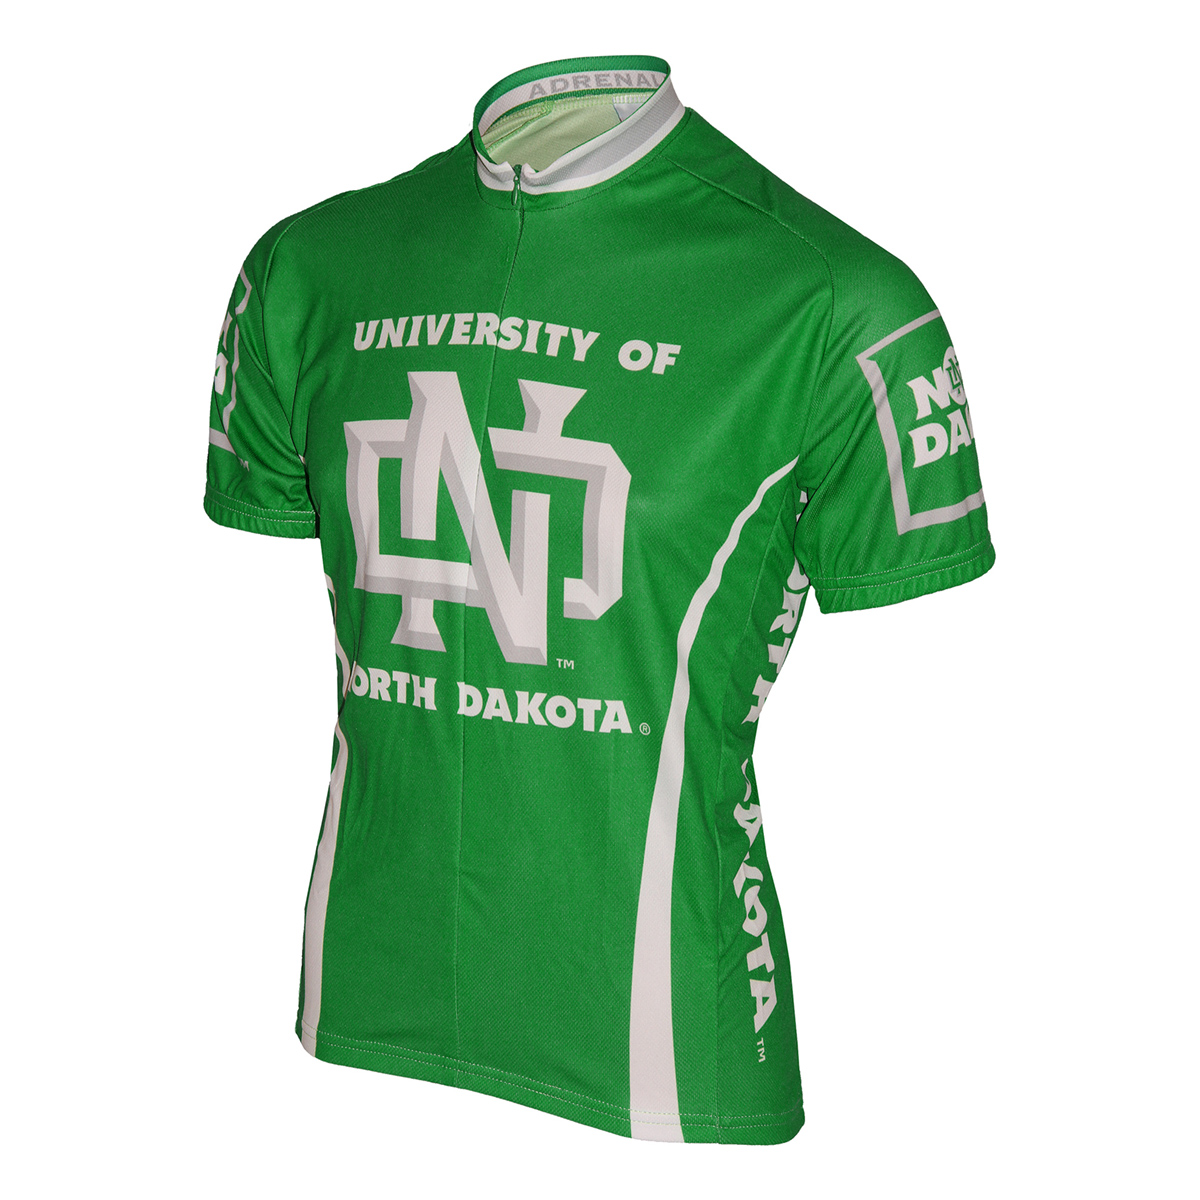 Adrenaline Promotions University of North Dakota Cycling Jersey